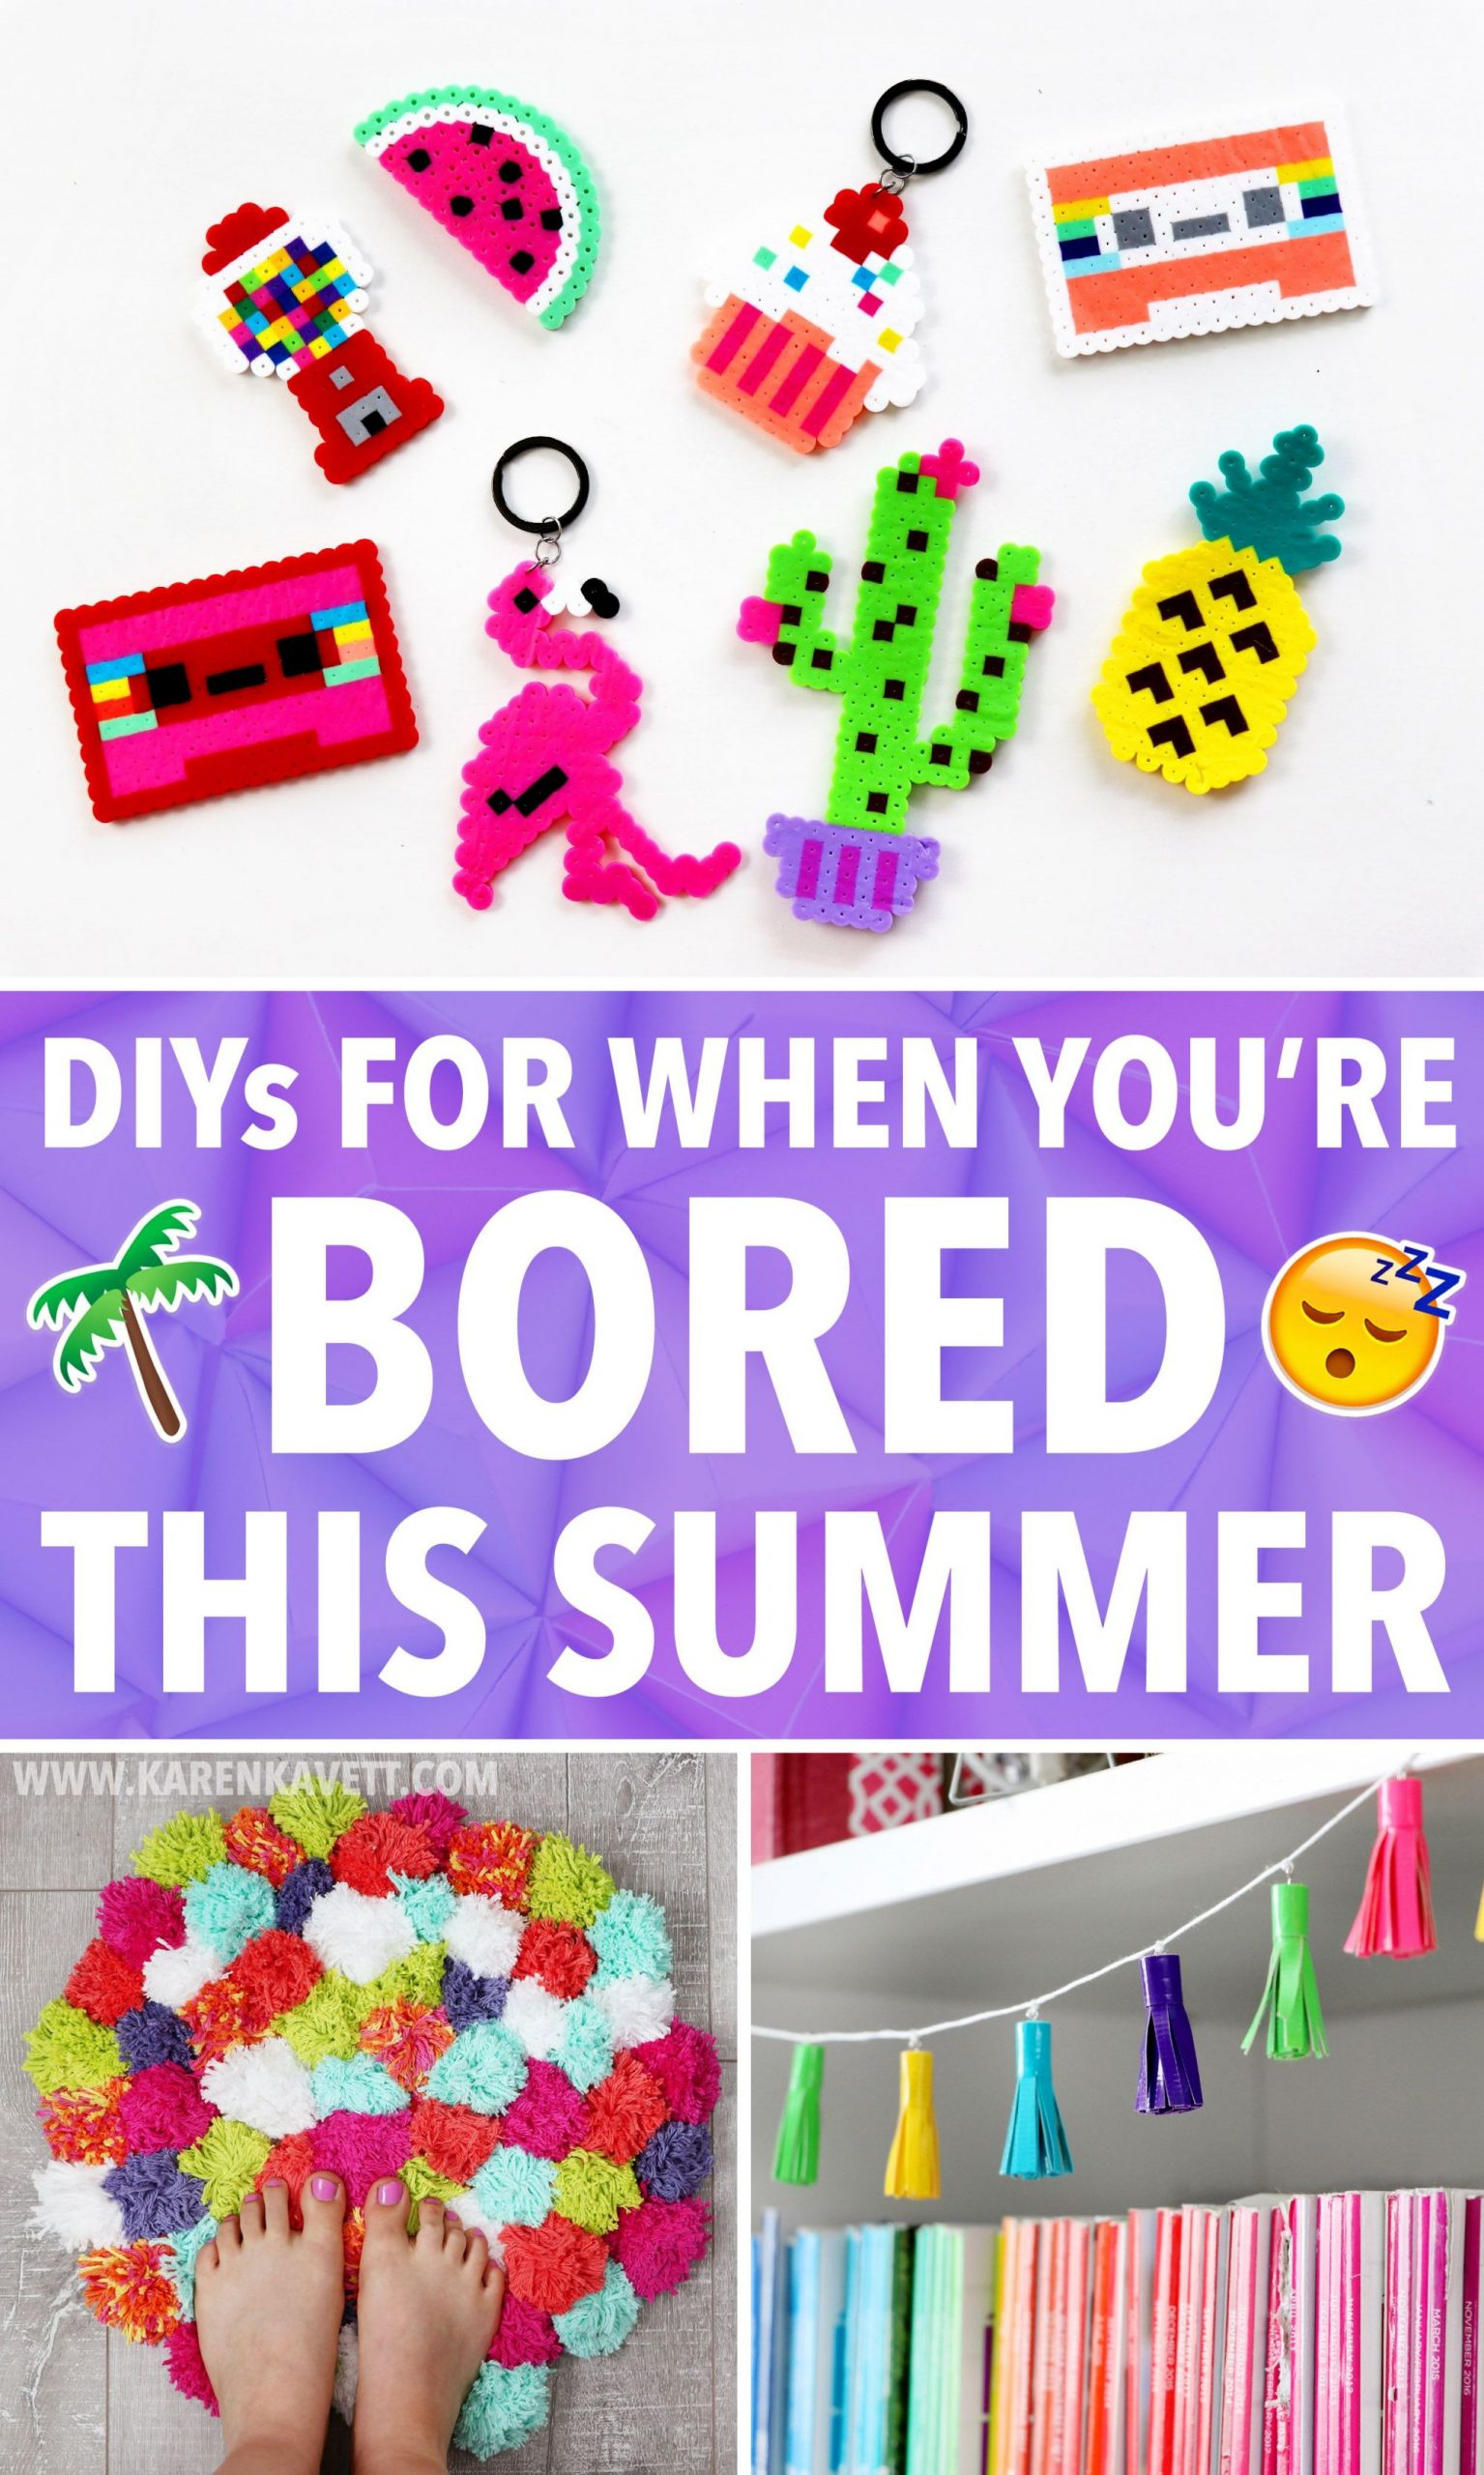 Amazing fun crafts to do when your bored